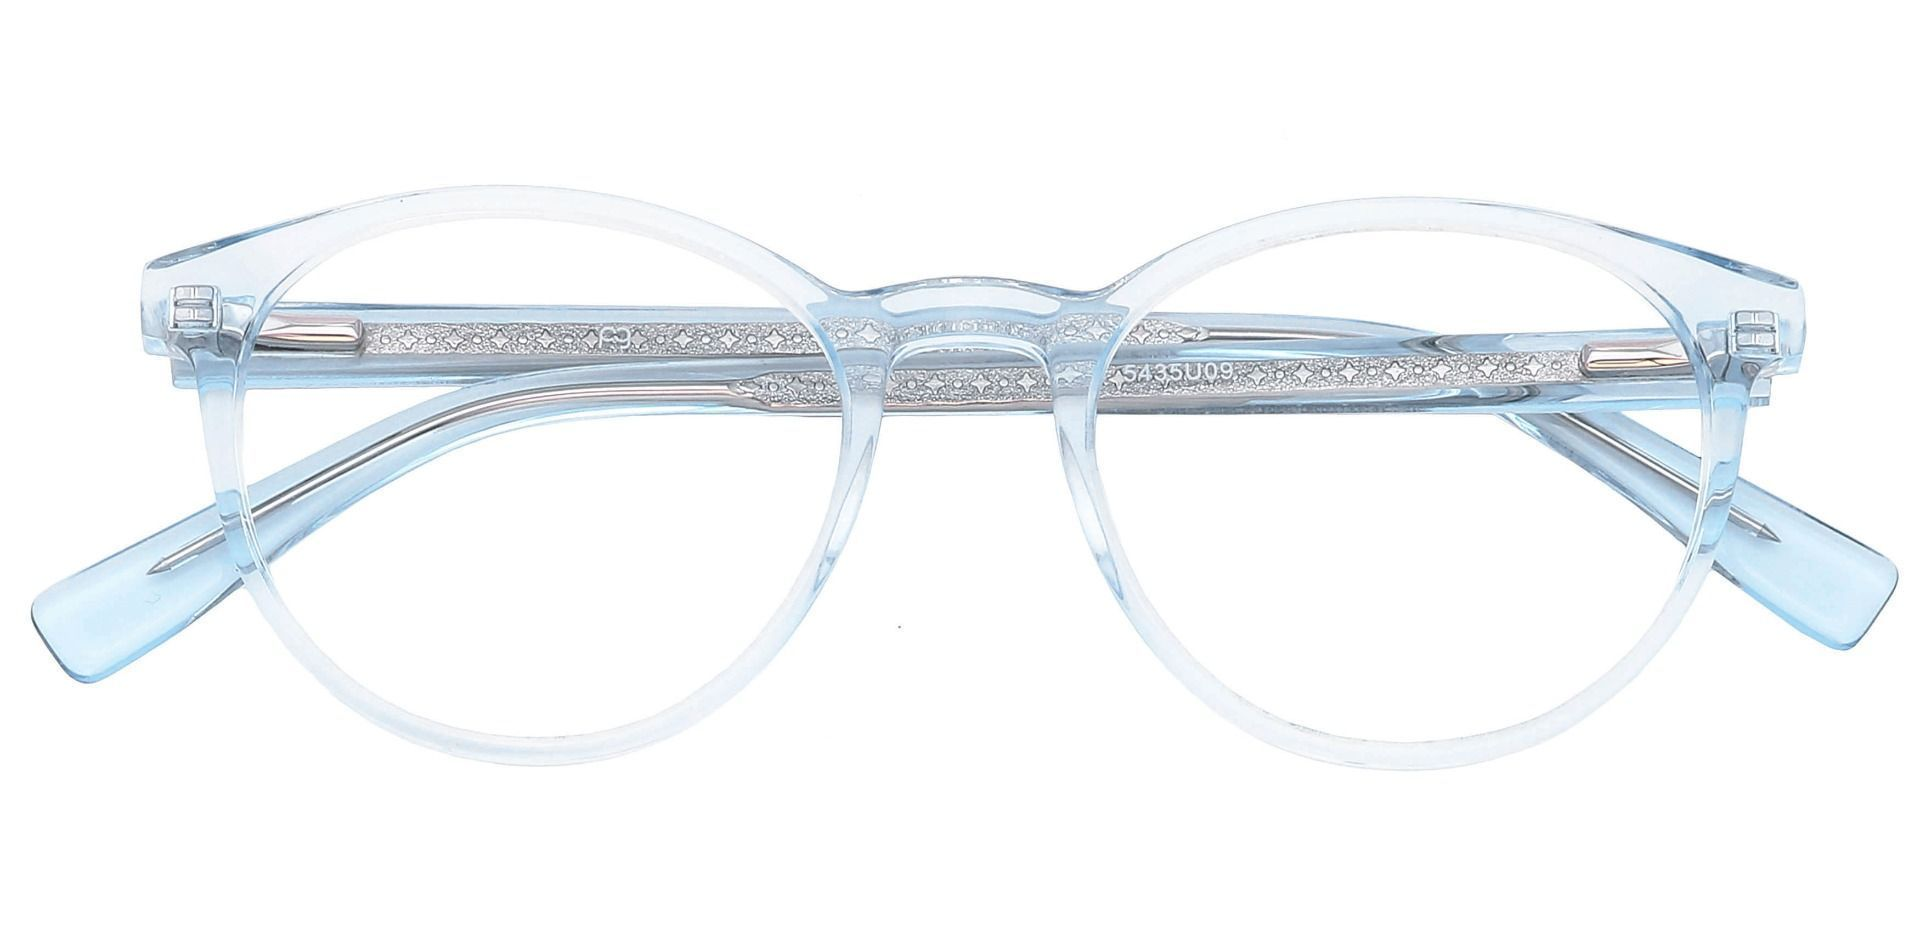 Stellar Oval Non-Rx Glasses - The Frame Is Clear With Light Blue